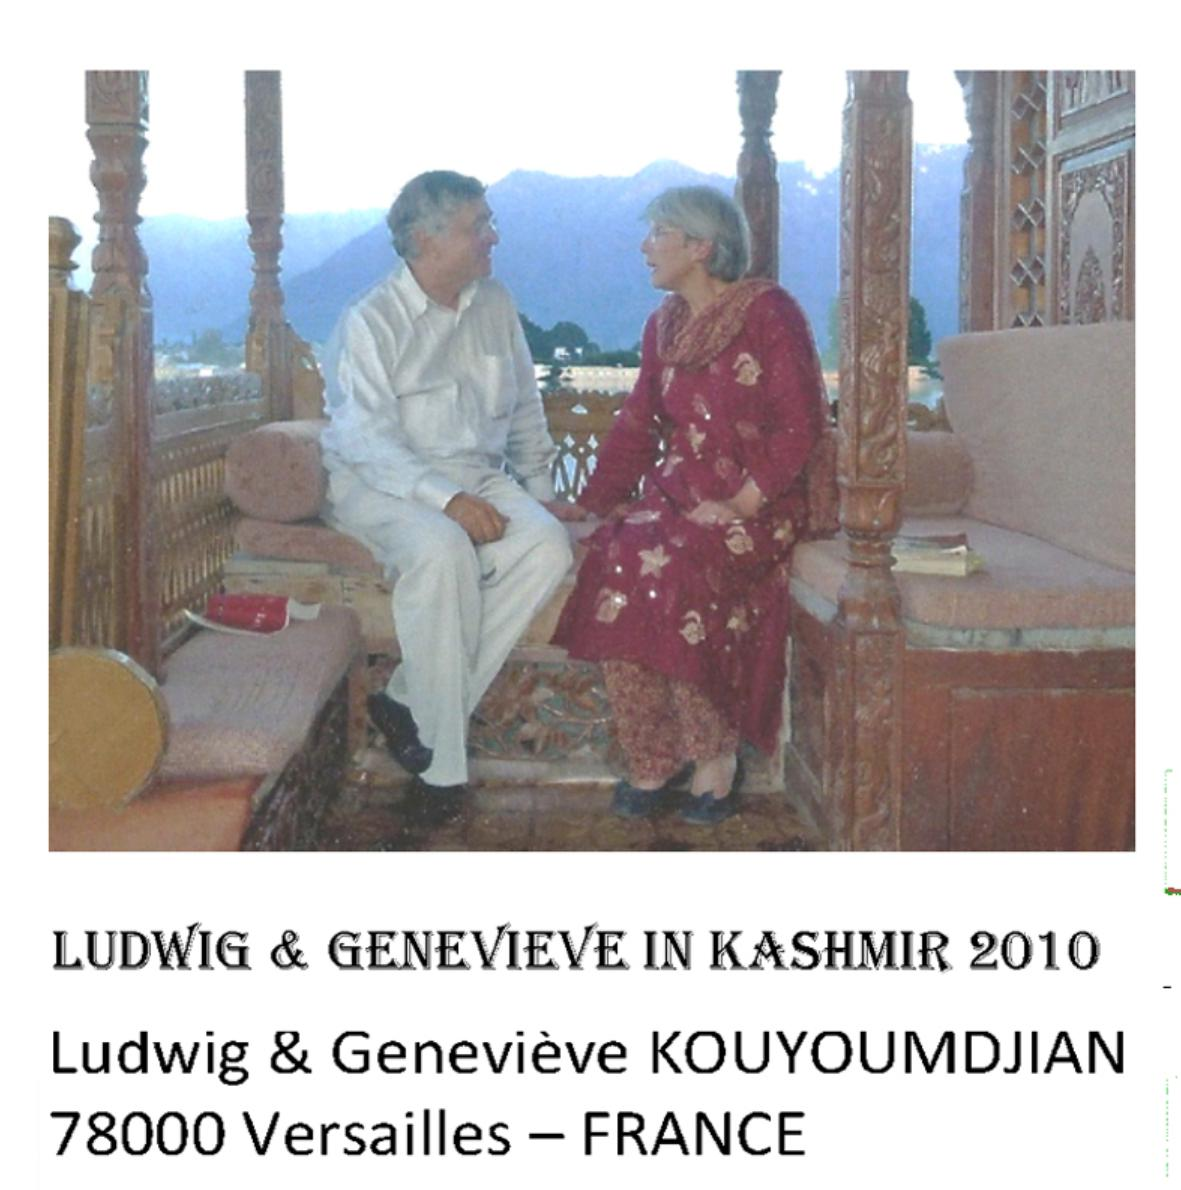 Ludwig and Geneviève, Year 2010